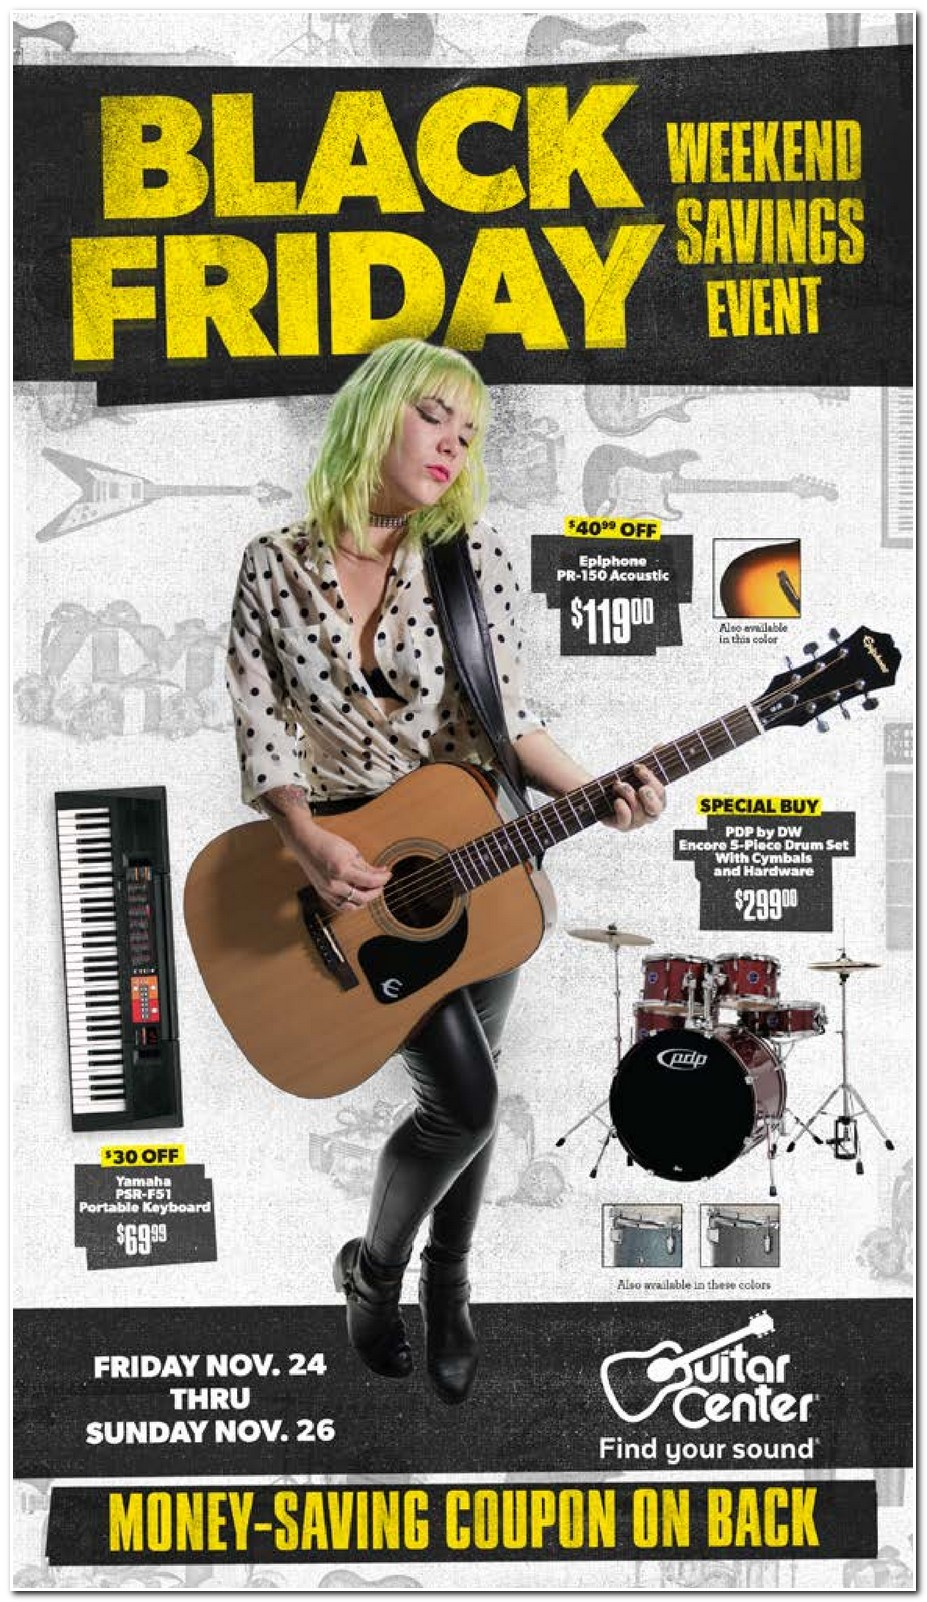 Guitar Center 2017 Black Friday Ad Black Friday Archive Black Friday Ads From The Past